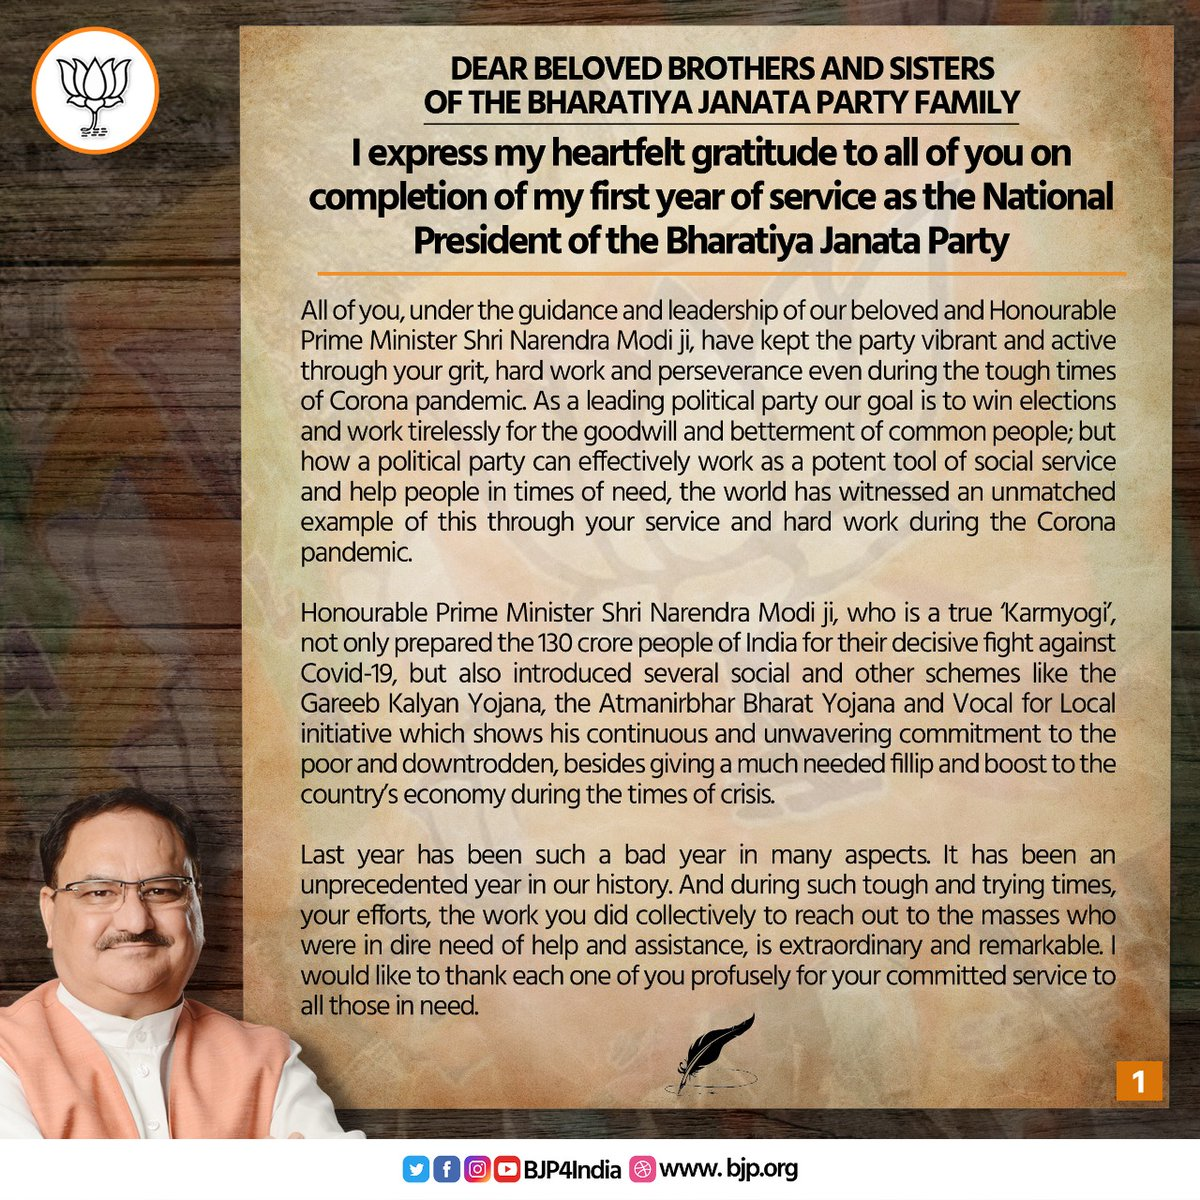 Hon'ble President of Bharatiya Janata Party, Shri @JPNadda, writes a heartfelt letter addressing party Karyakartas on completion of his first year as National President of the party.